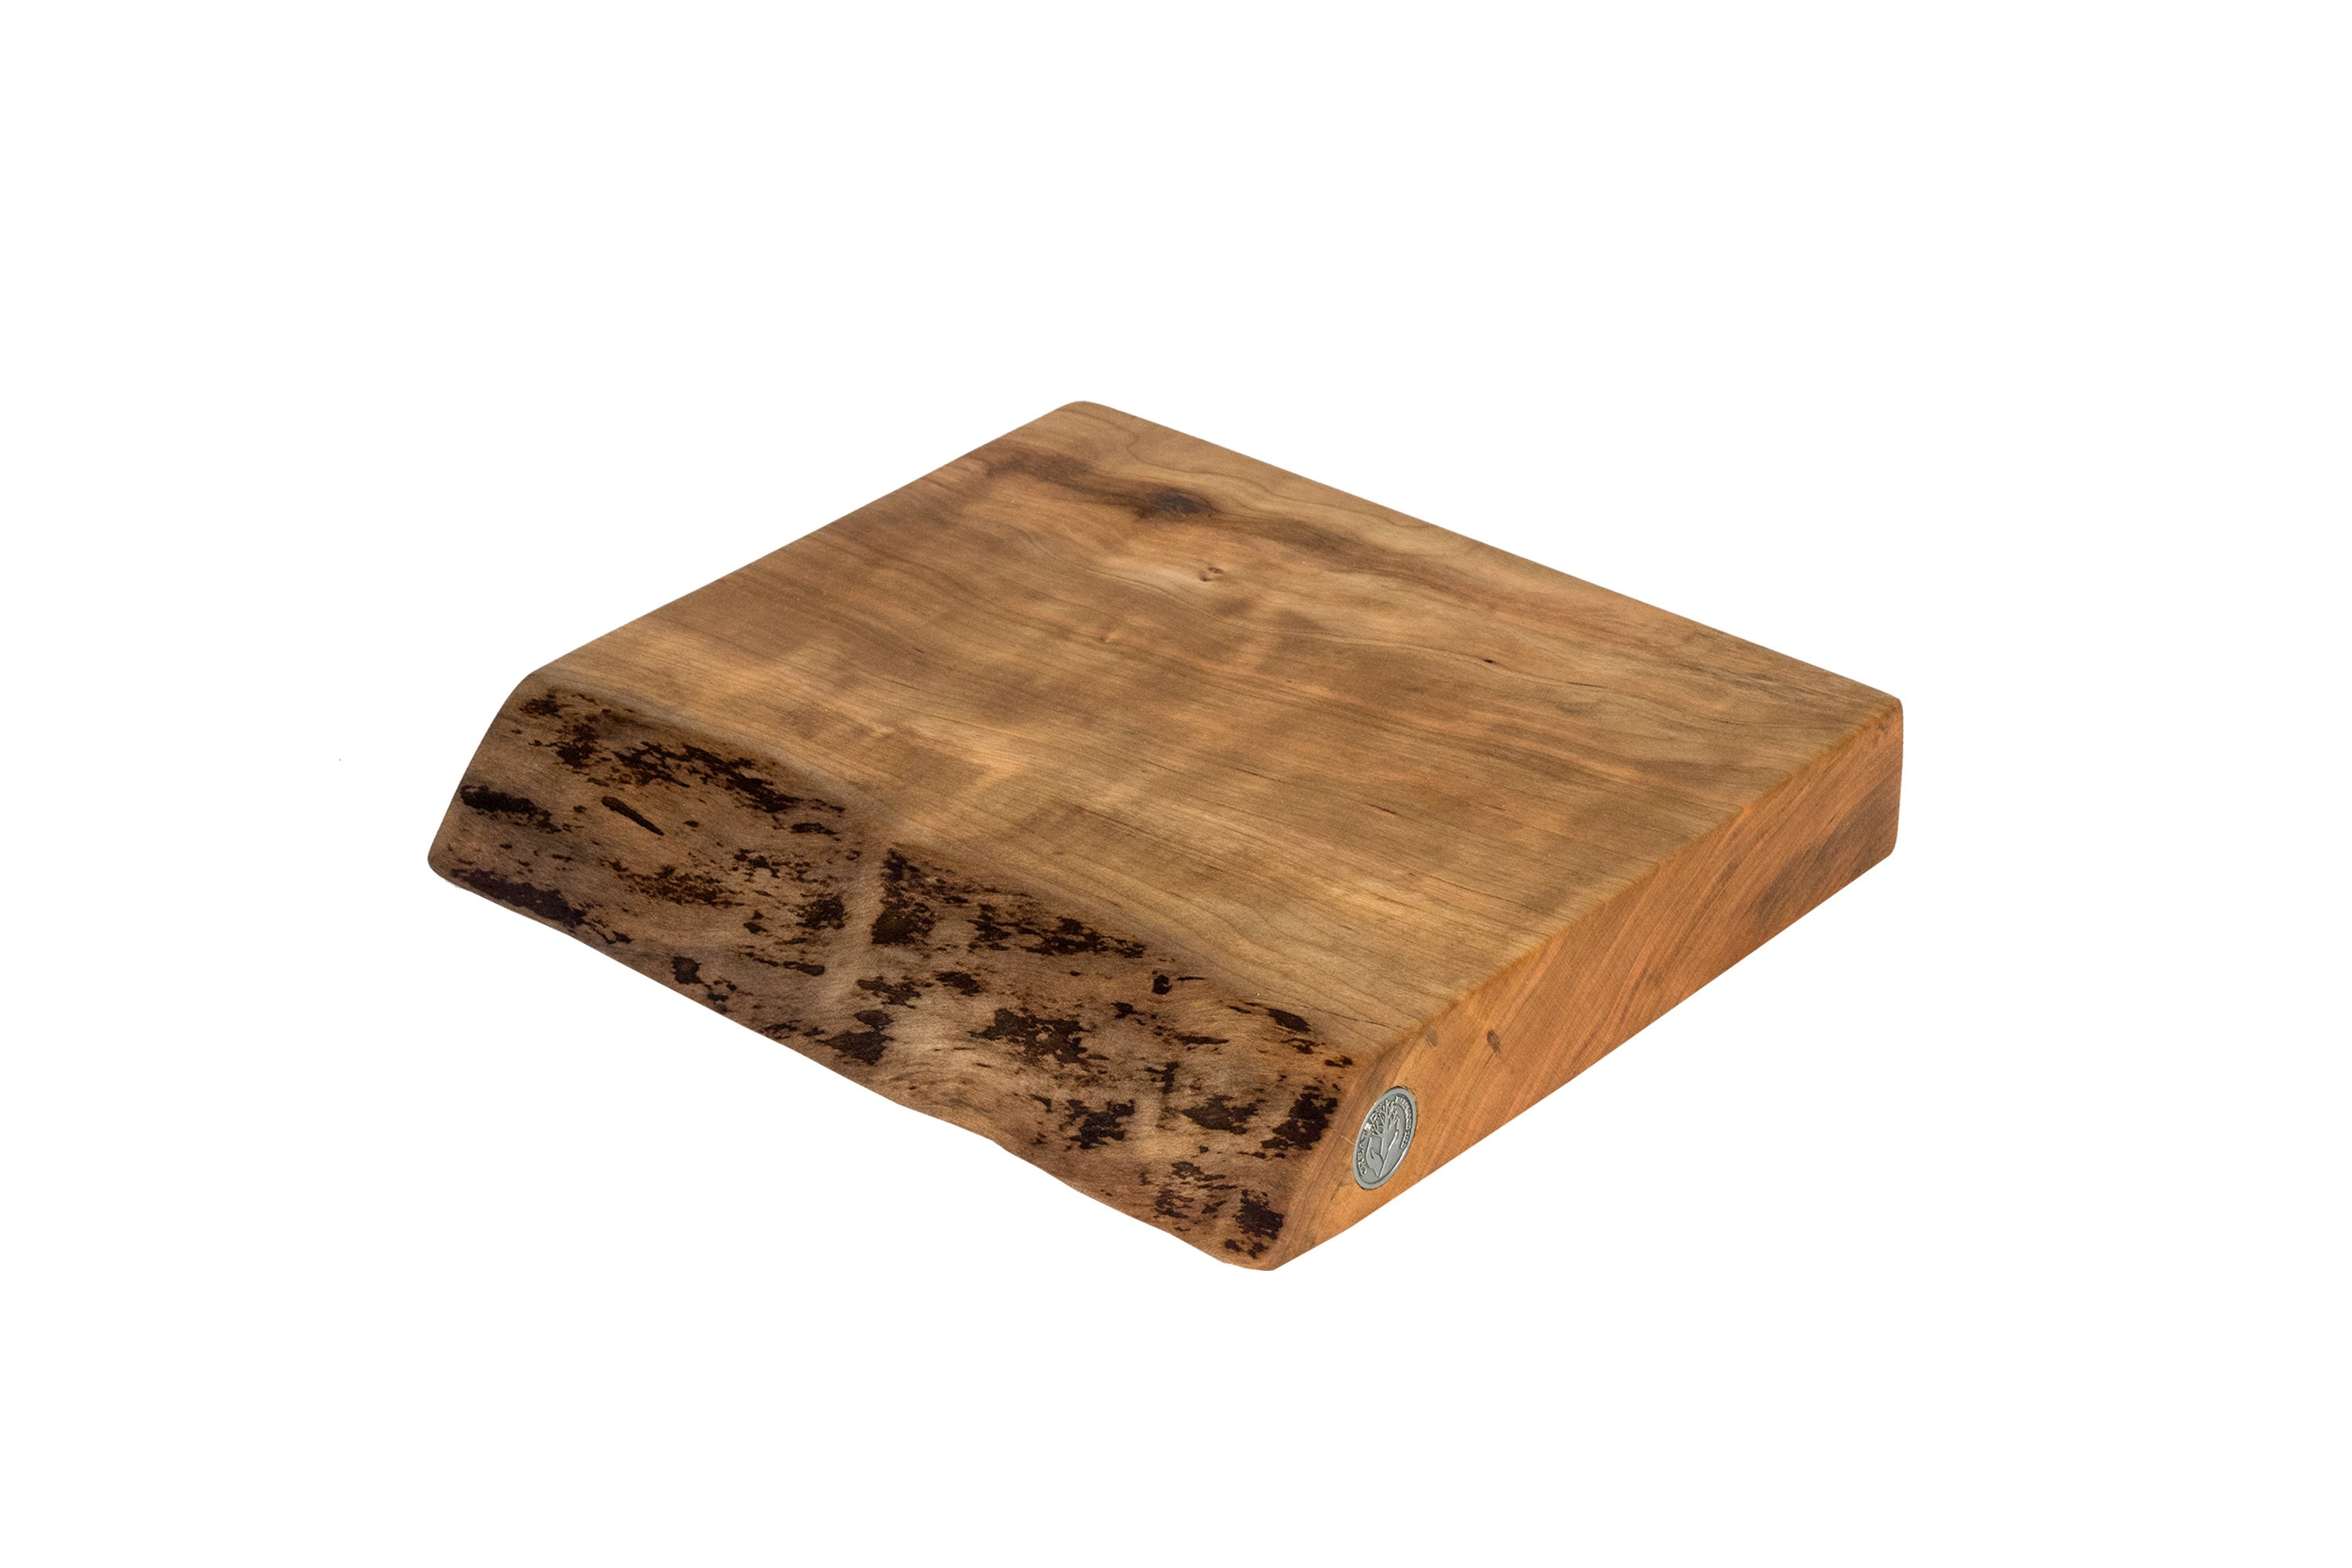 Live Edge Cherry Cutting Board #070- 11.75